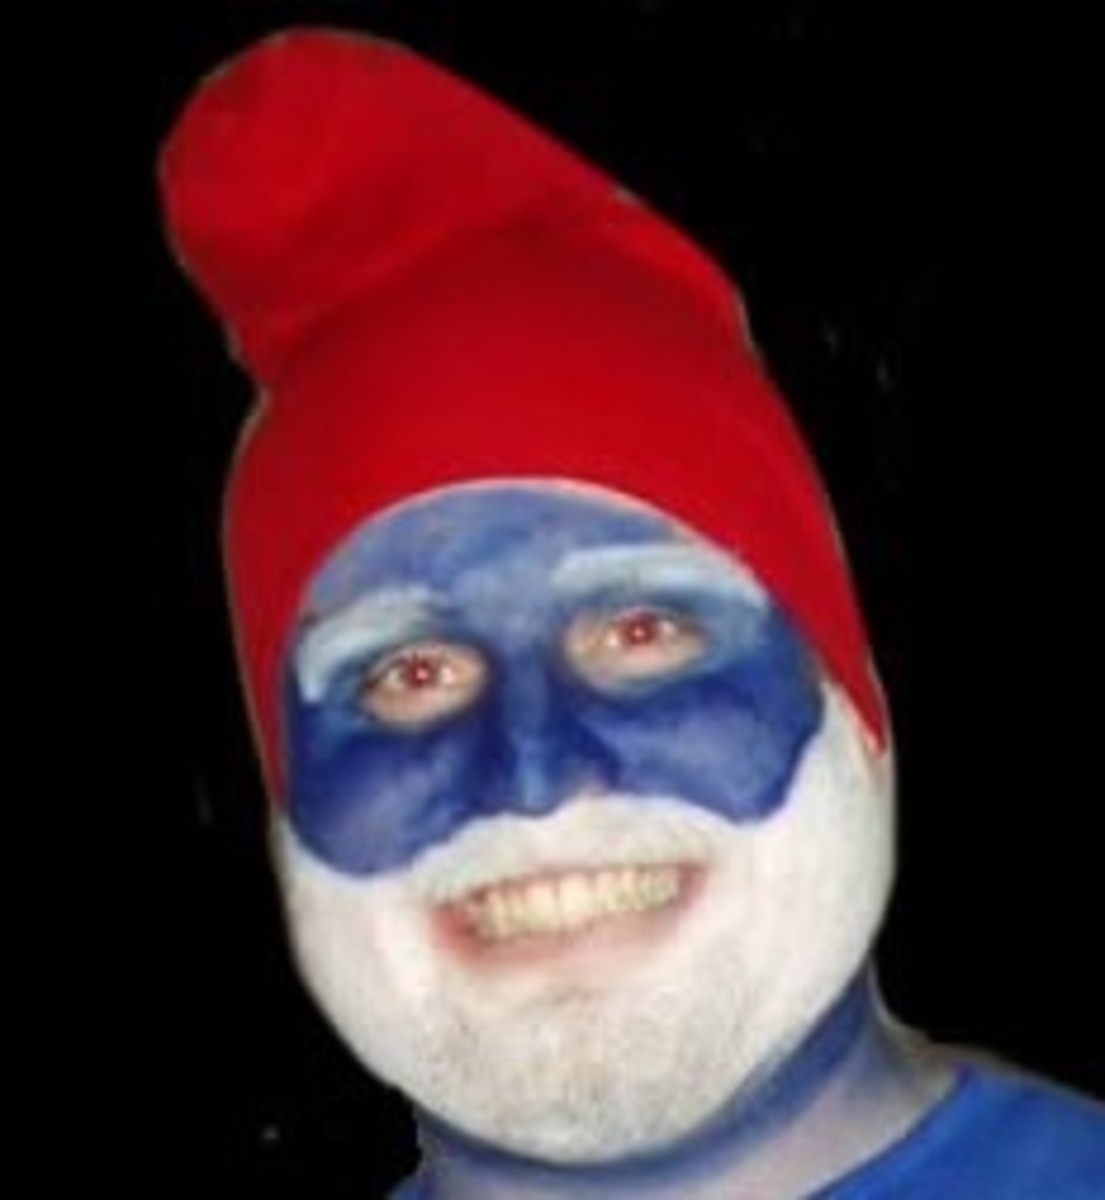 Easy Costume: makeup, red hat, blue shirt.